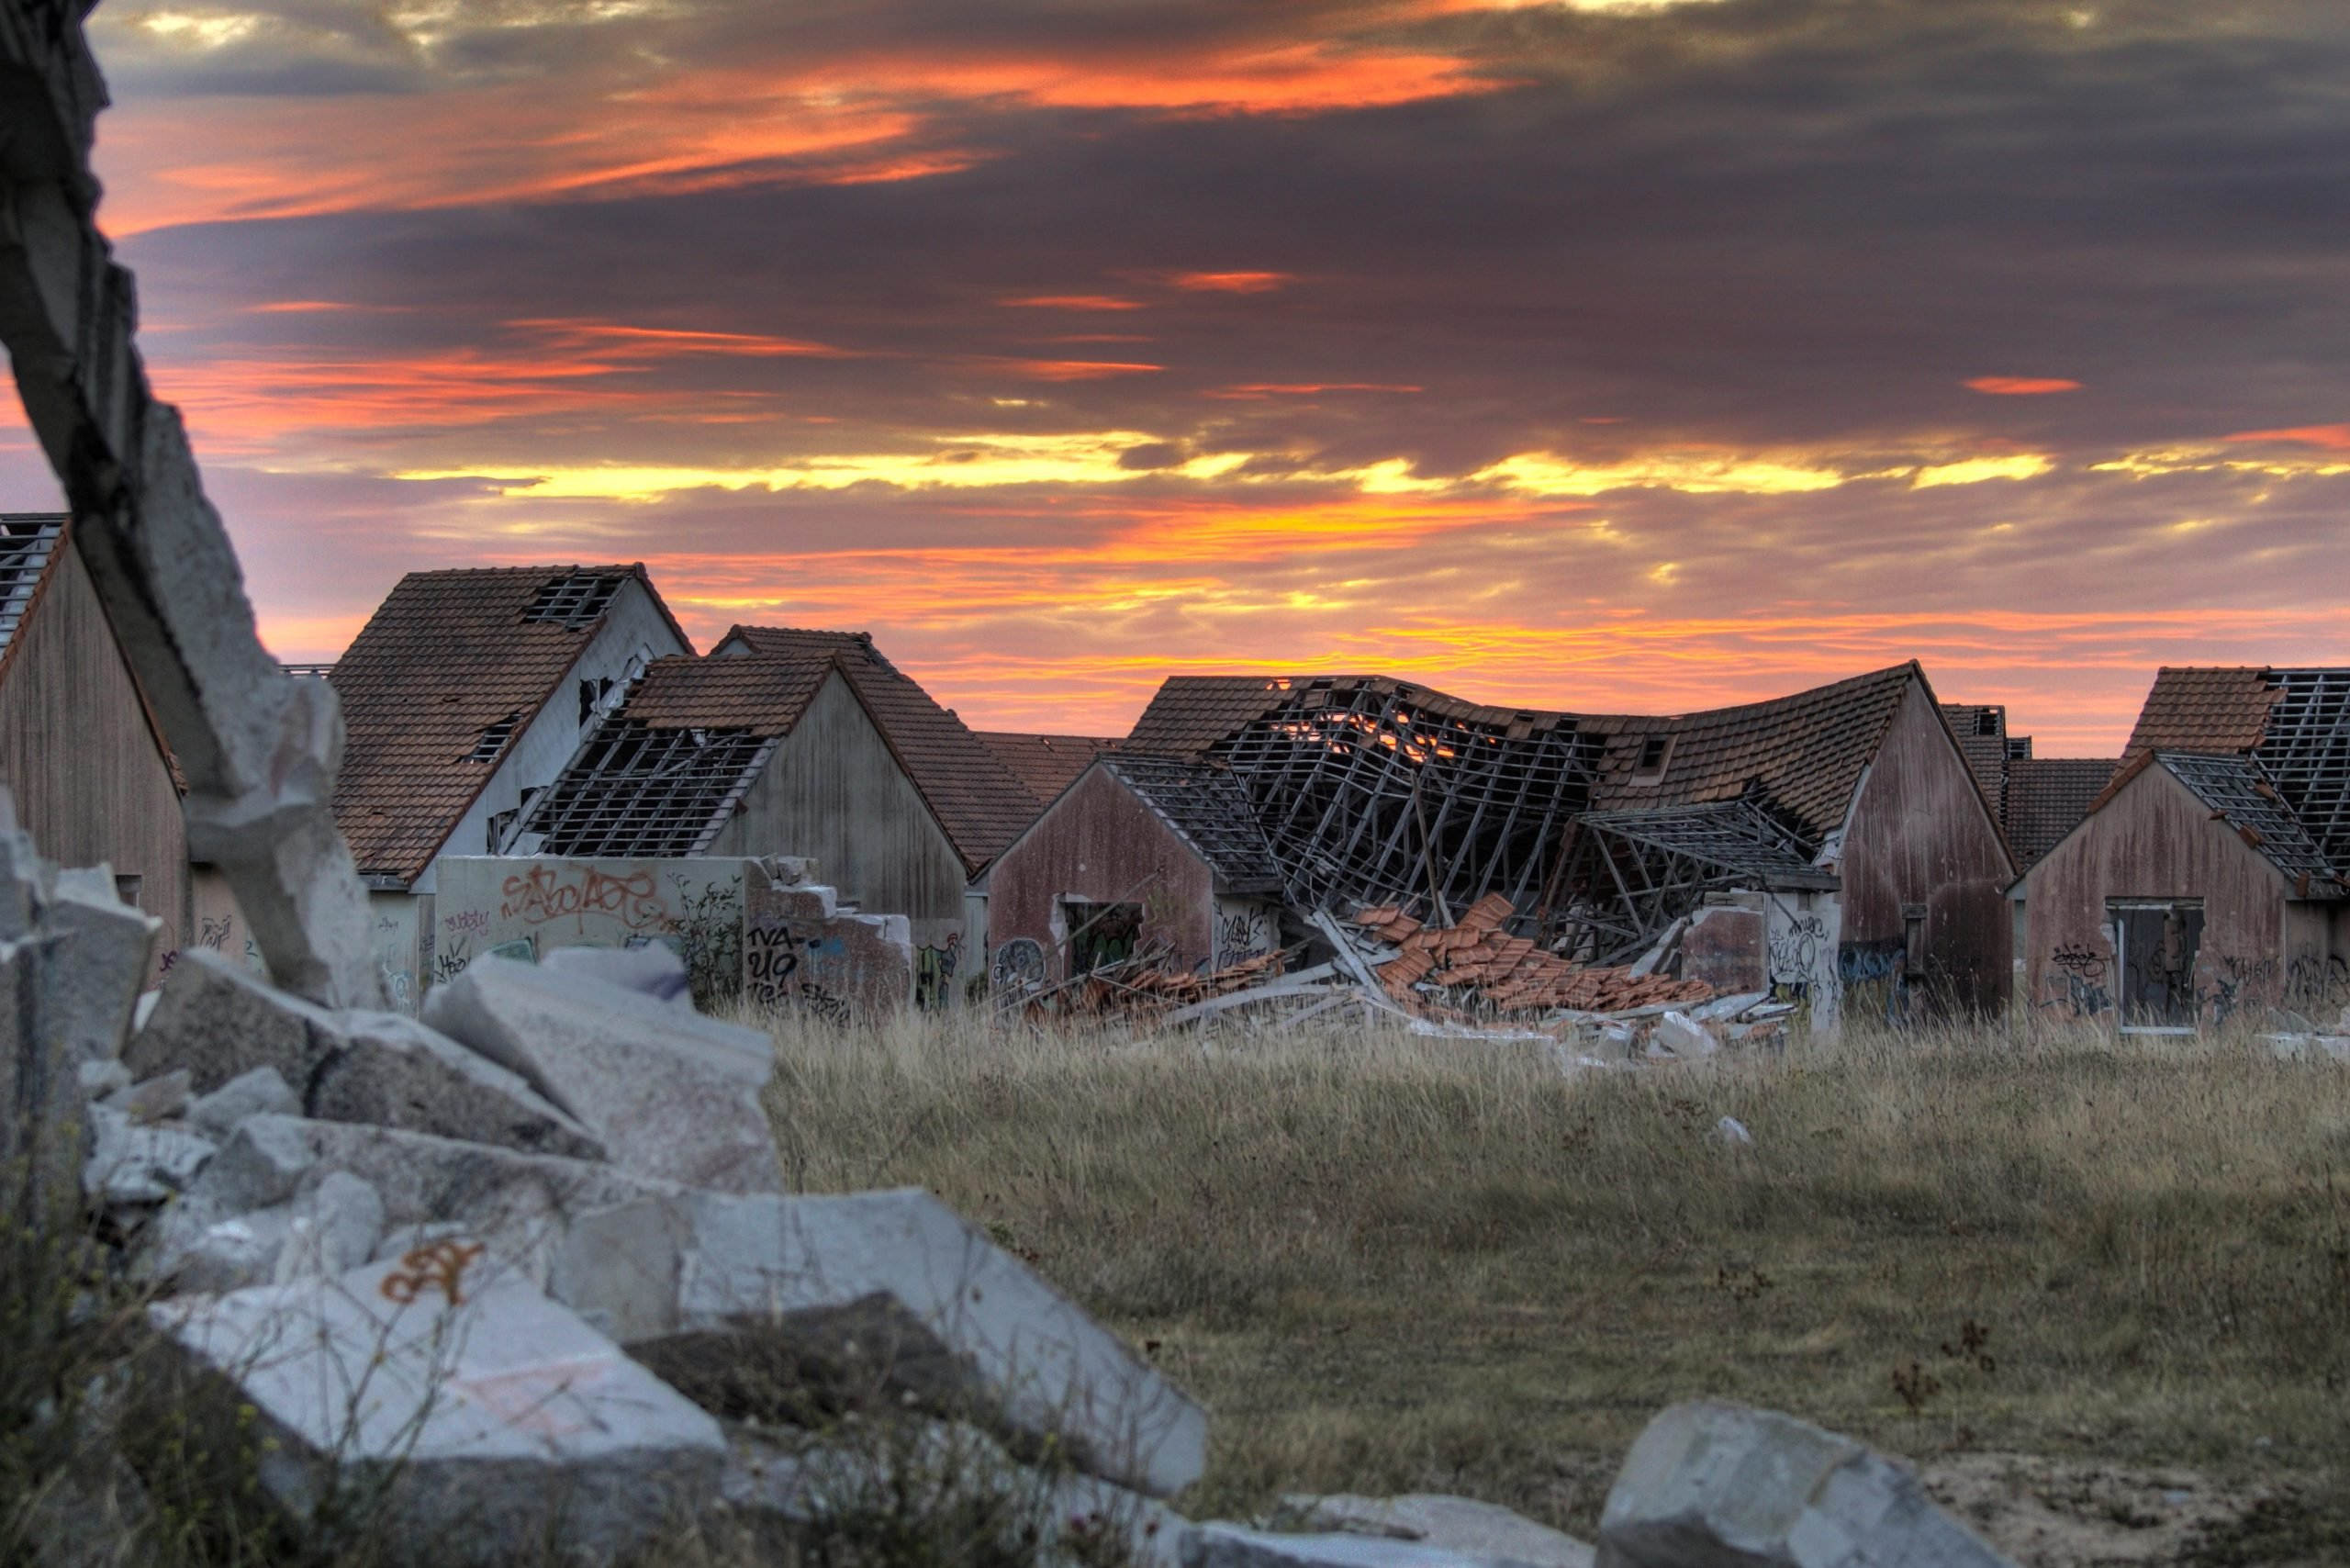 Abandoned houses at sunset